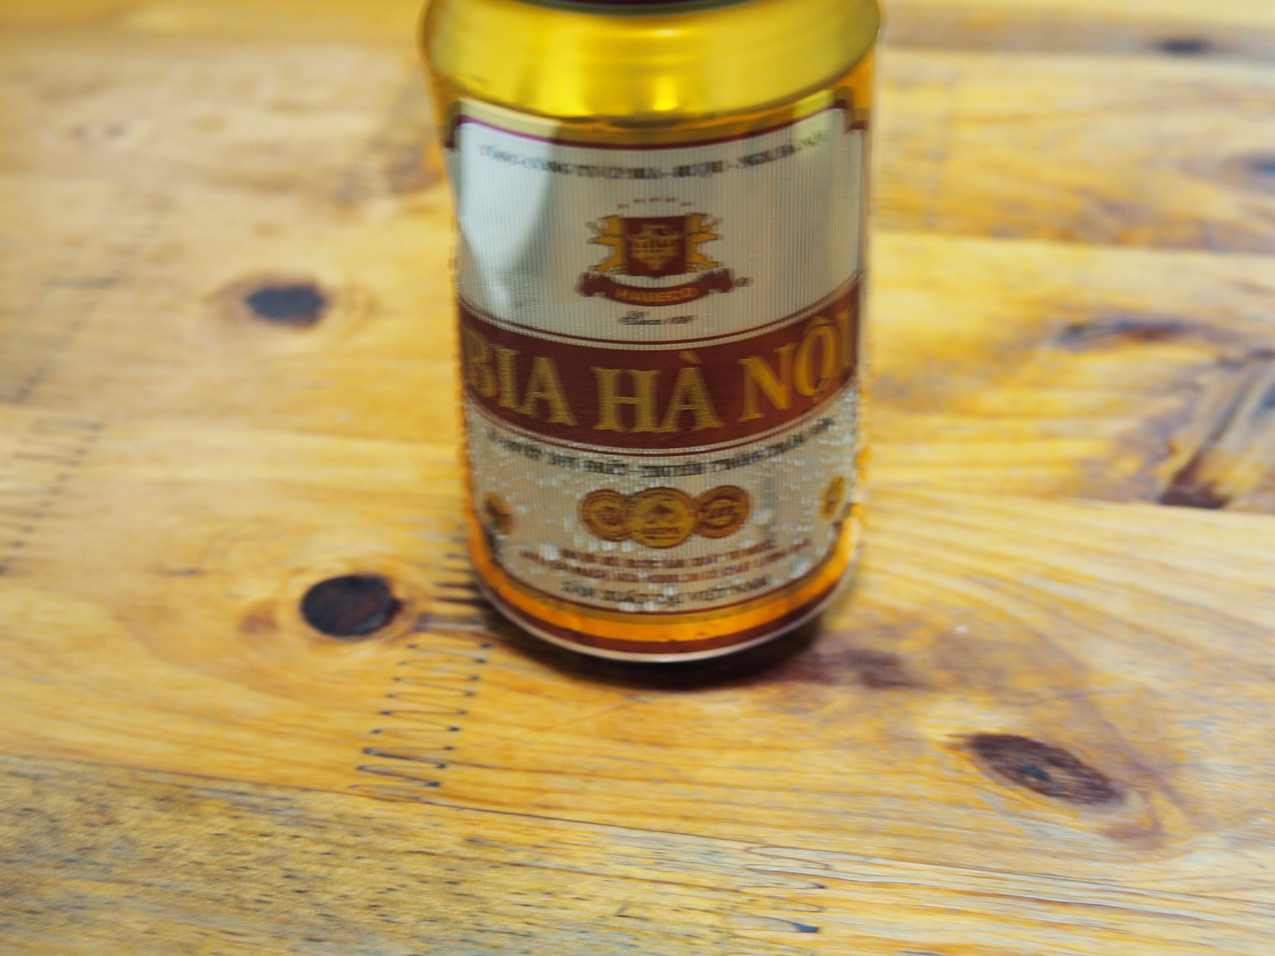 The beer of Hanoi: BIA HA NOI